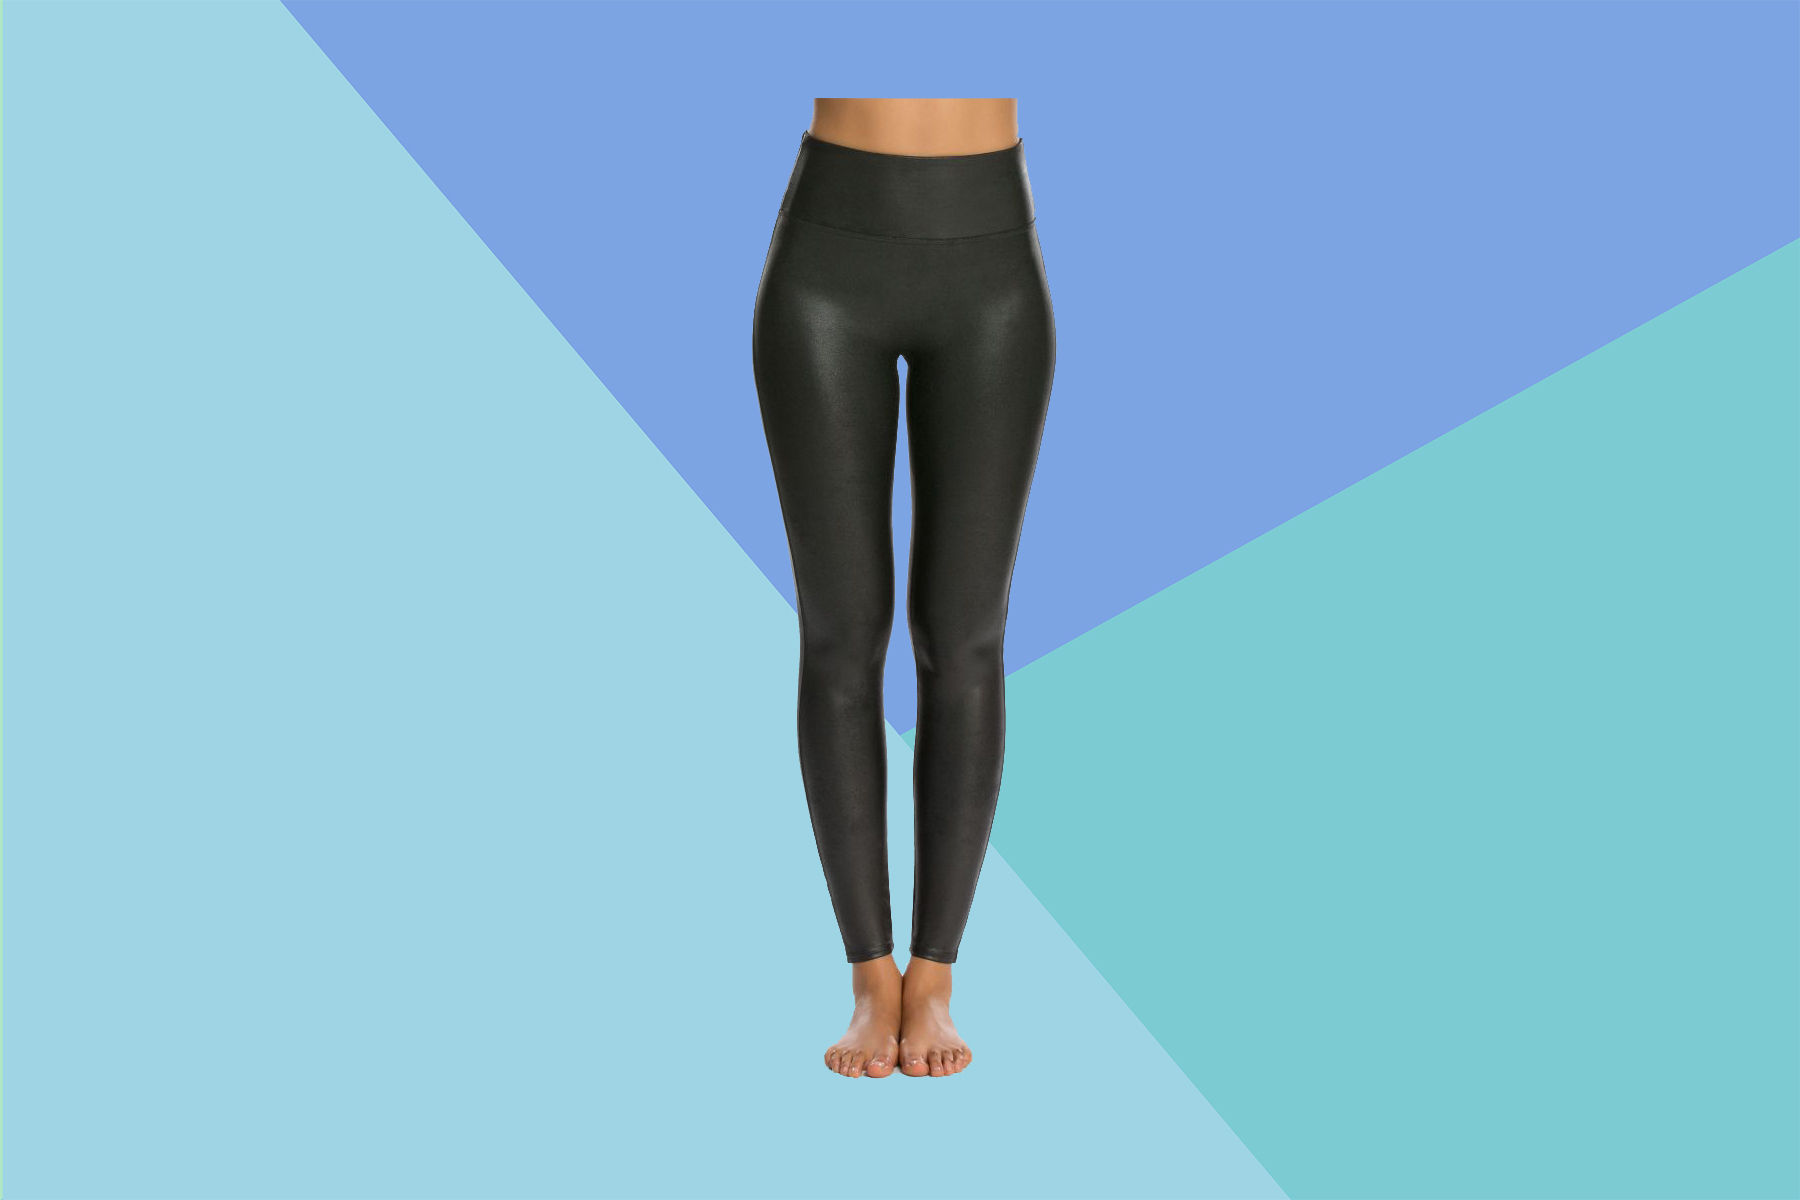 a71076ffaf8 11 Top-Rated Black Leggings That Are So Comfortable